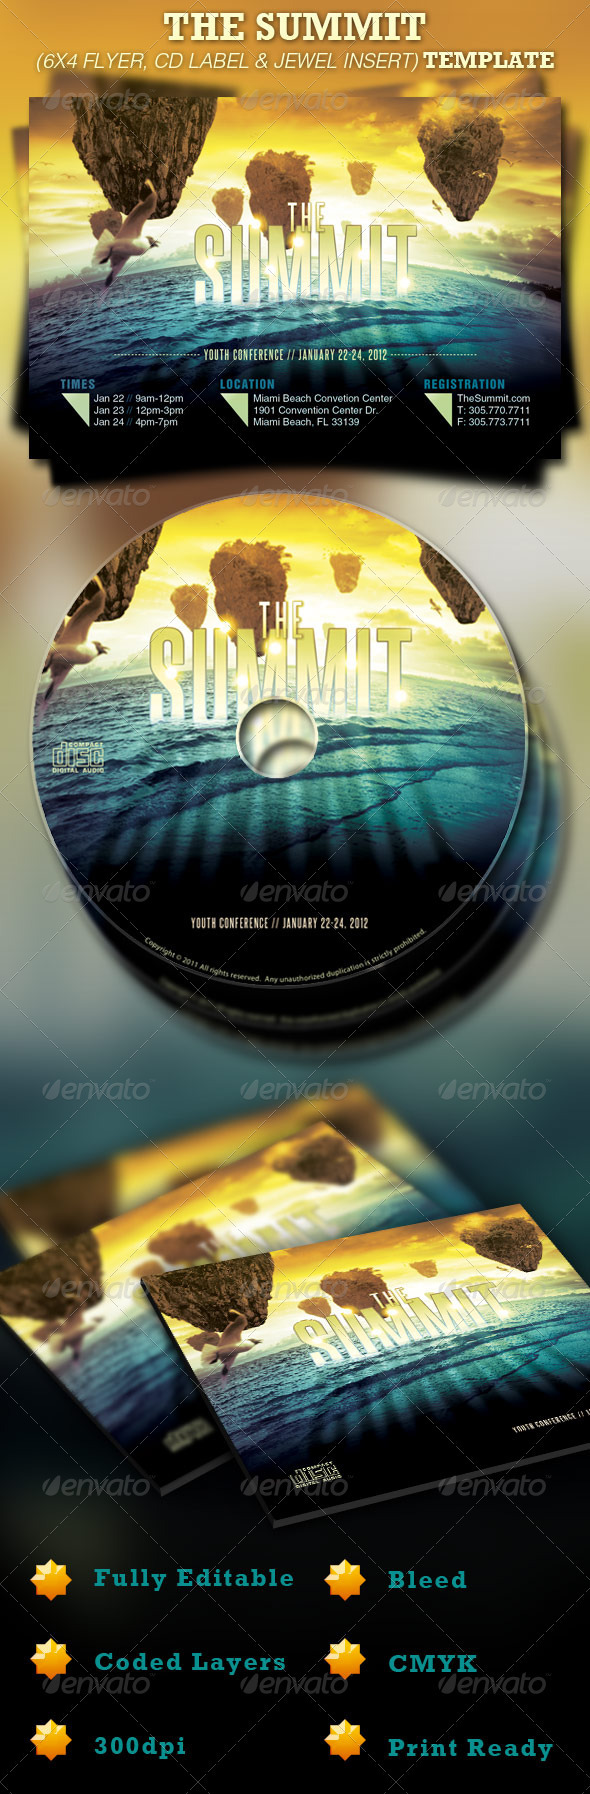 Graphic River The Summit Church 6x4 Flyer and CD Template Print Templates -  Flyers  Church 925630